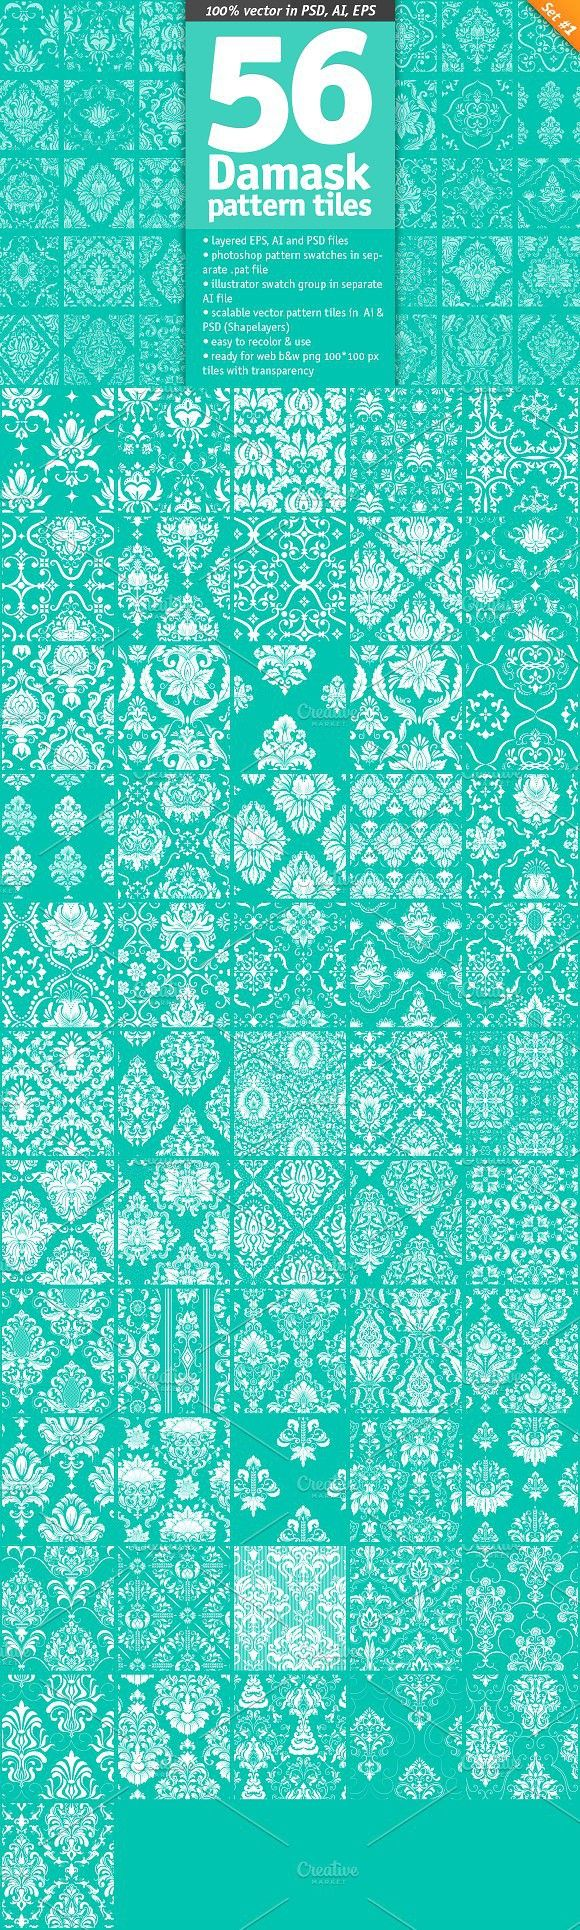 56 Damask Pattern Tiles. Patterns